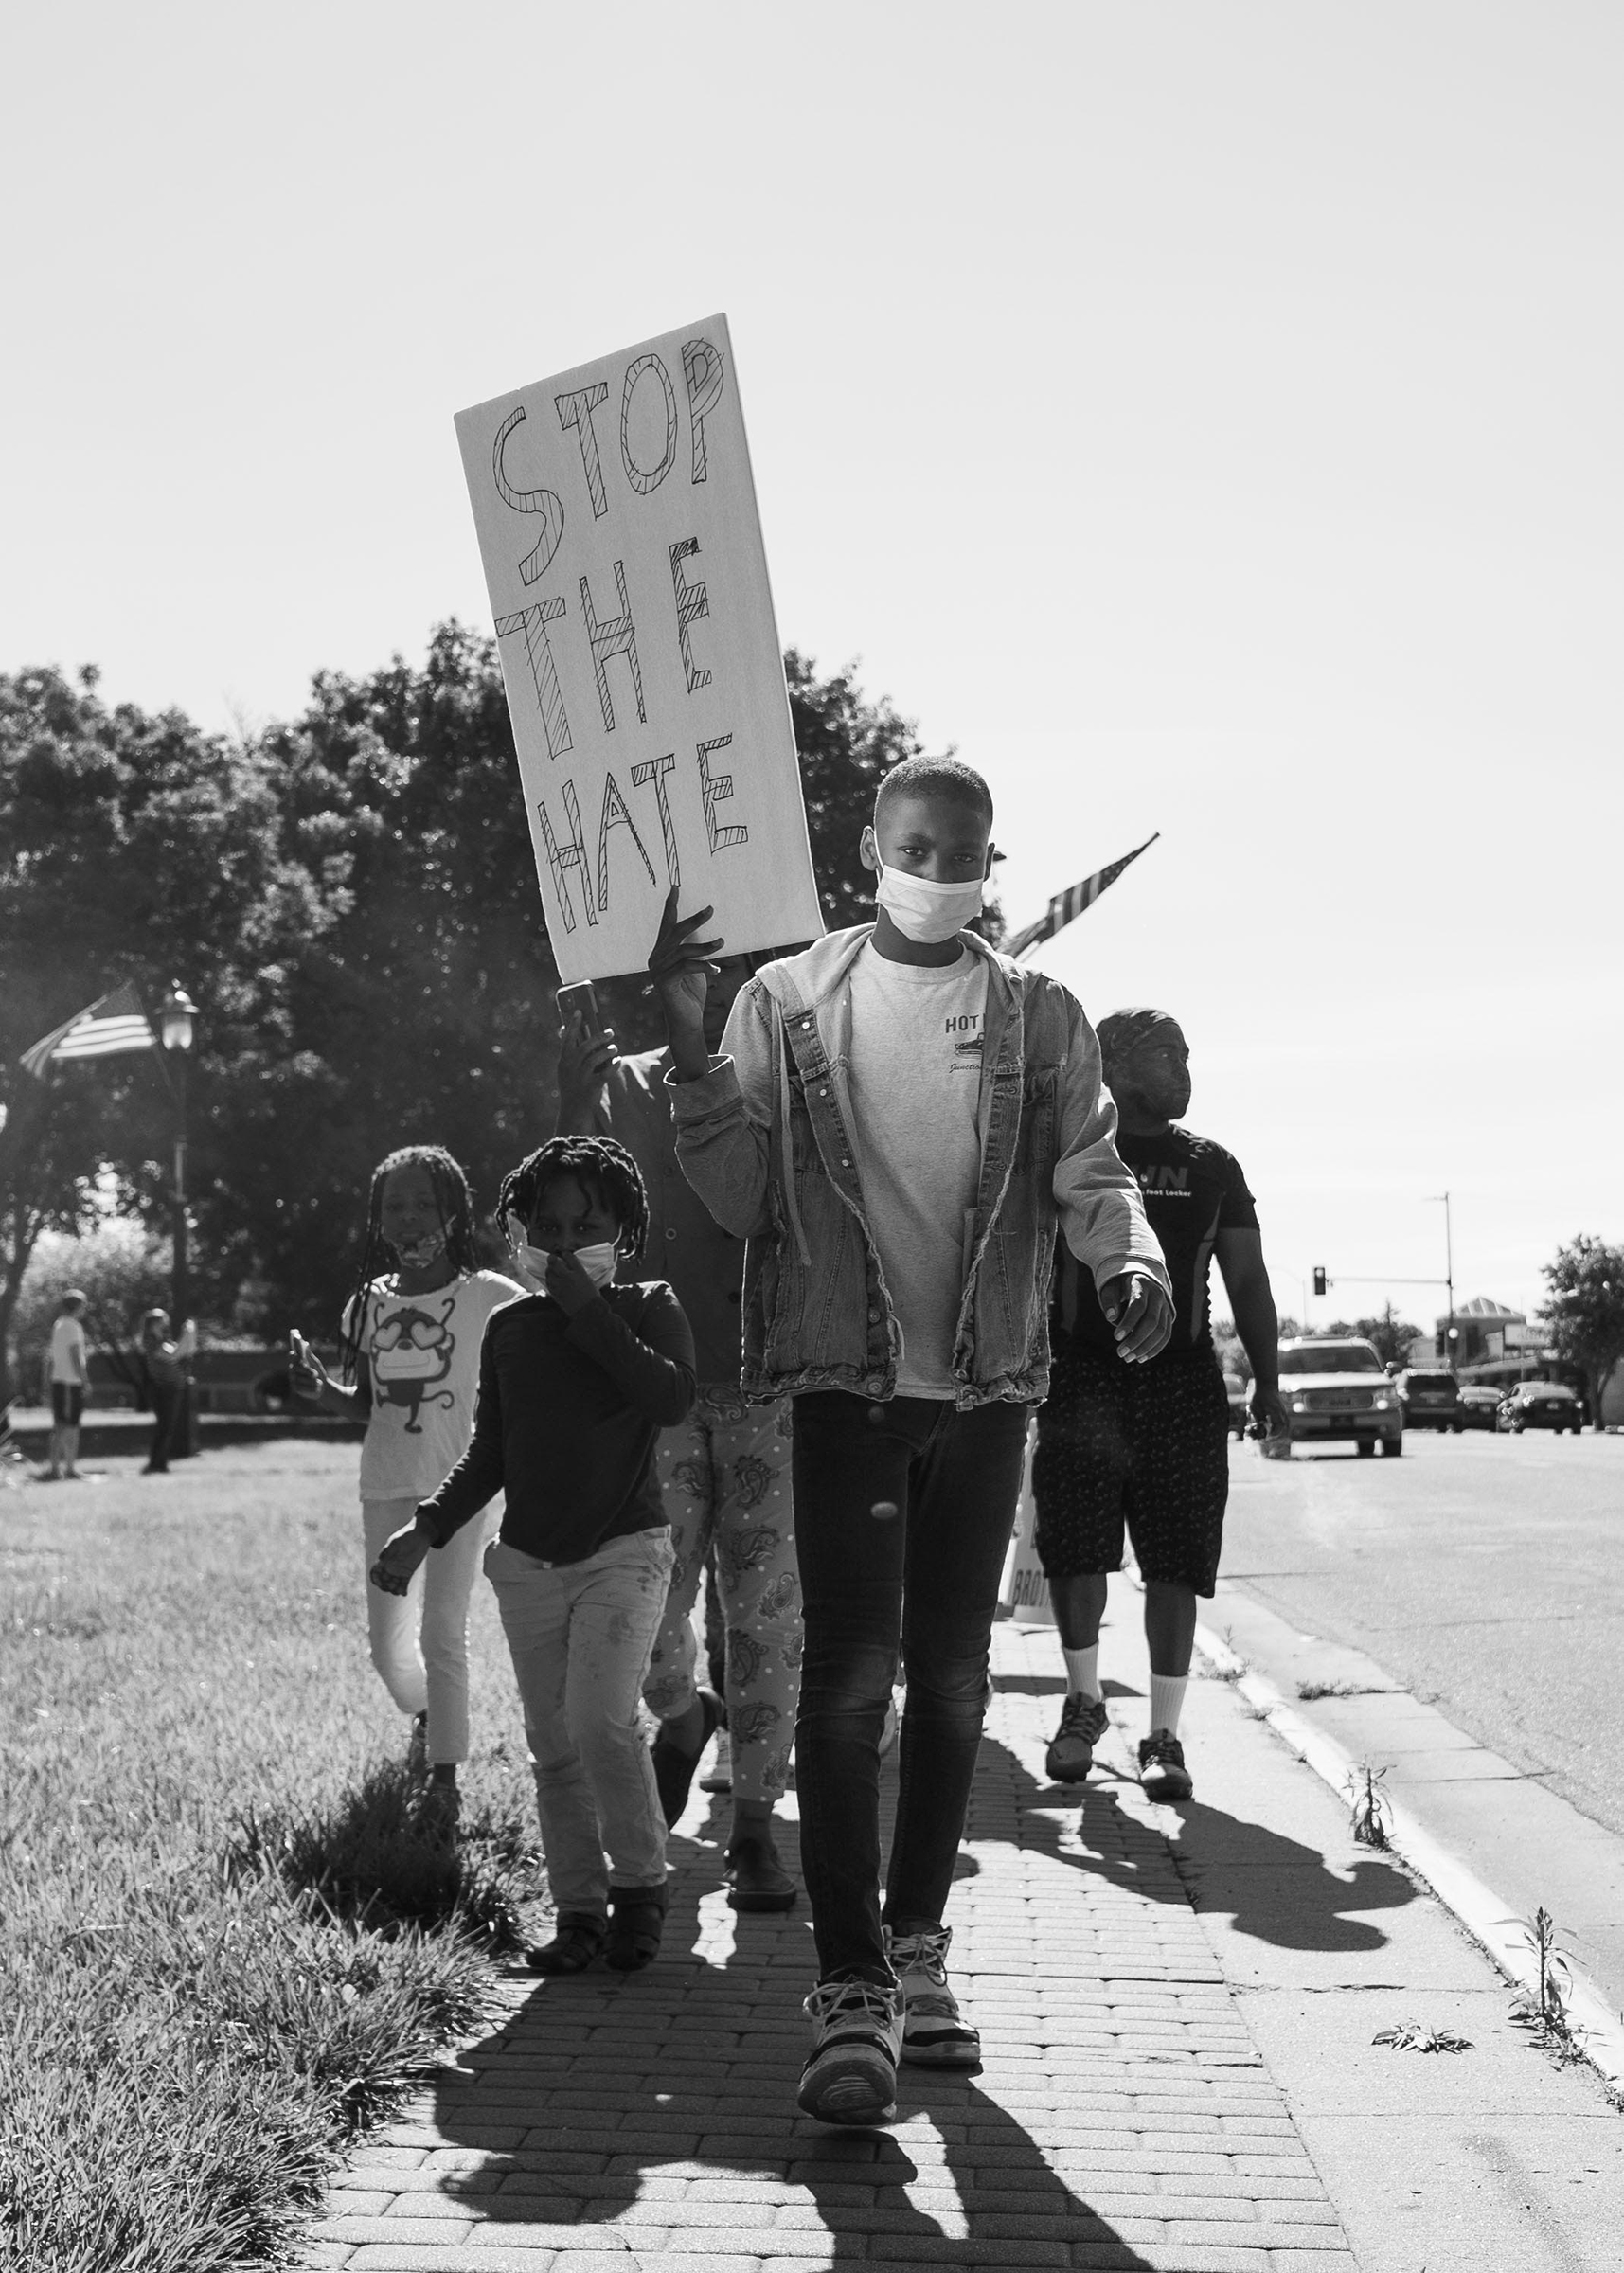 Jason Allende, 13, walks before his mother and siblings, protesting the death of George Floyd in Junction City, Kans., May 29, 2020.